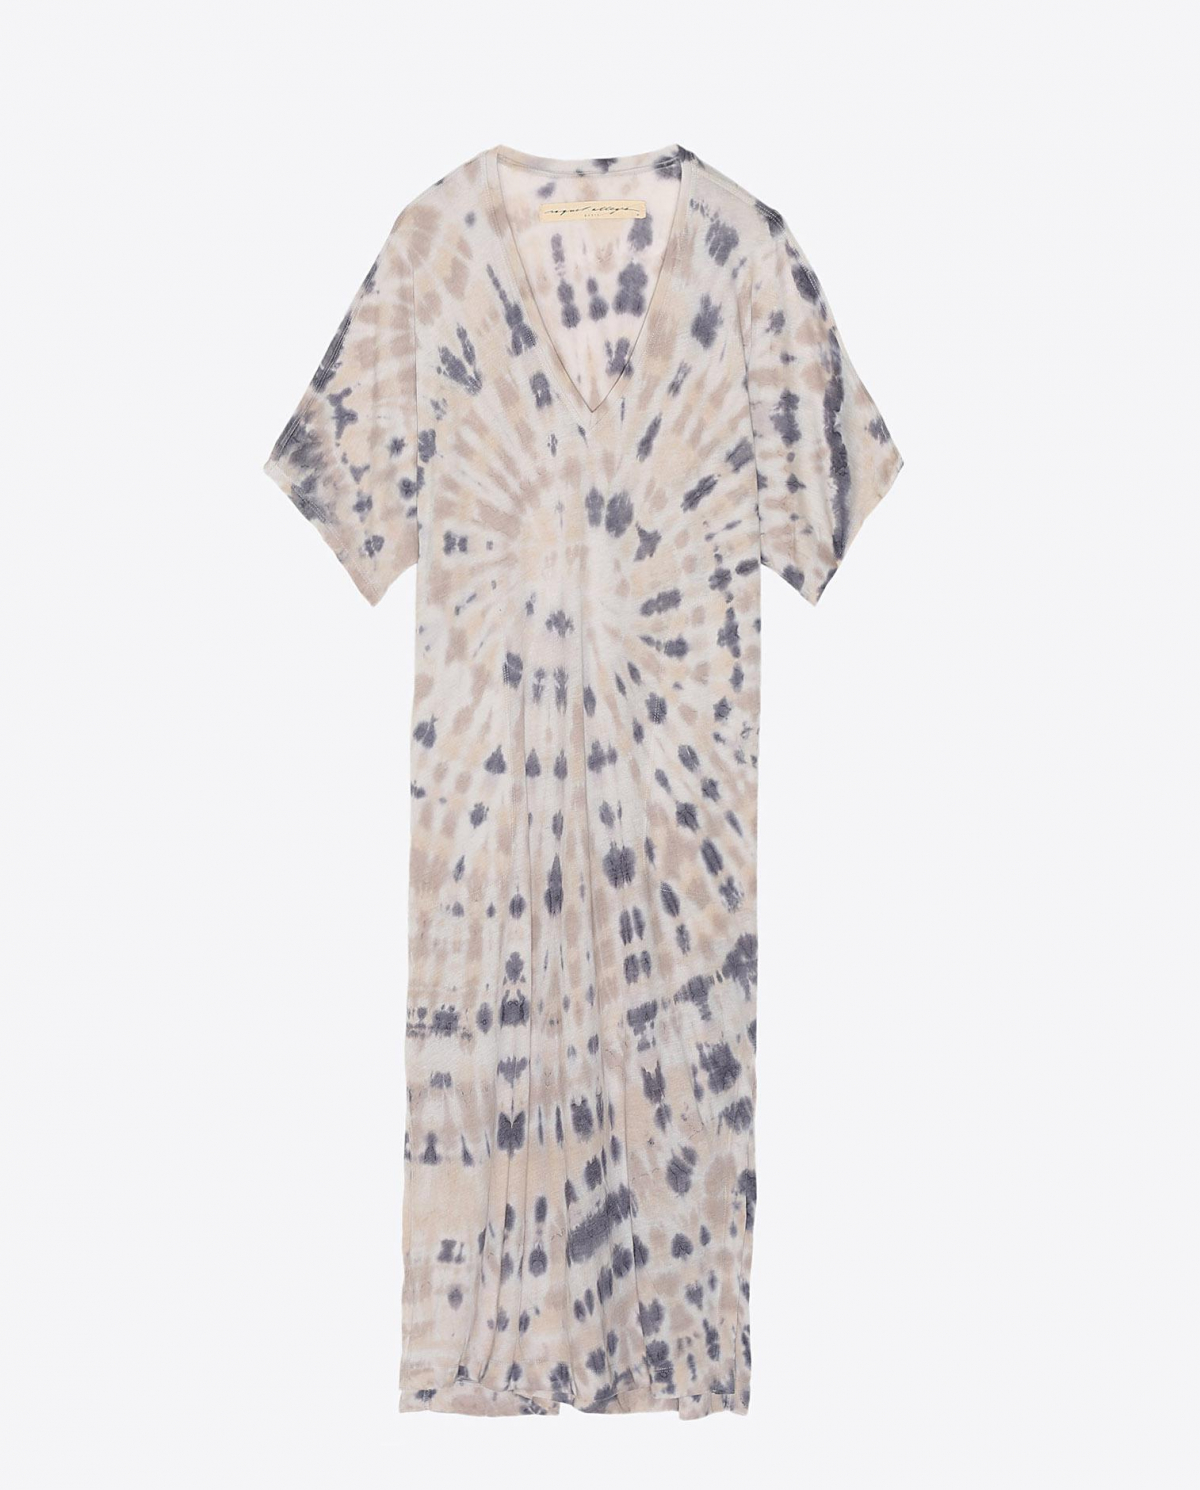 Raquel Allegra Pré-Collection V Neck Boxy Dress Tie & Dye - Sand Dollar